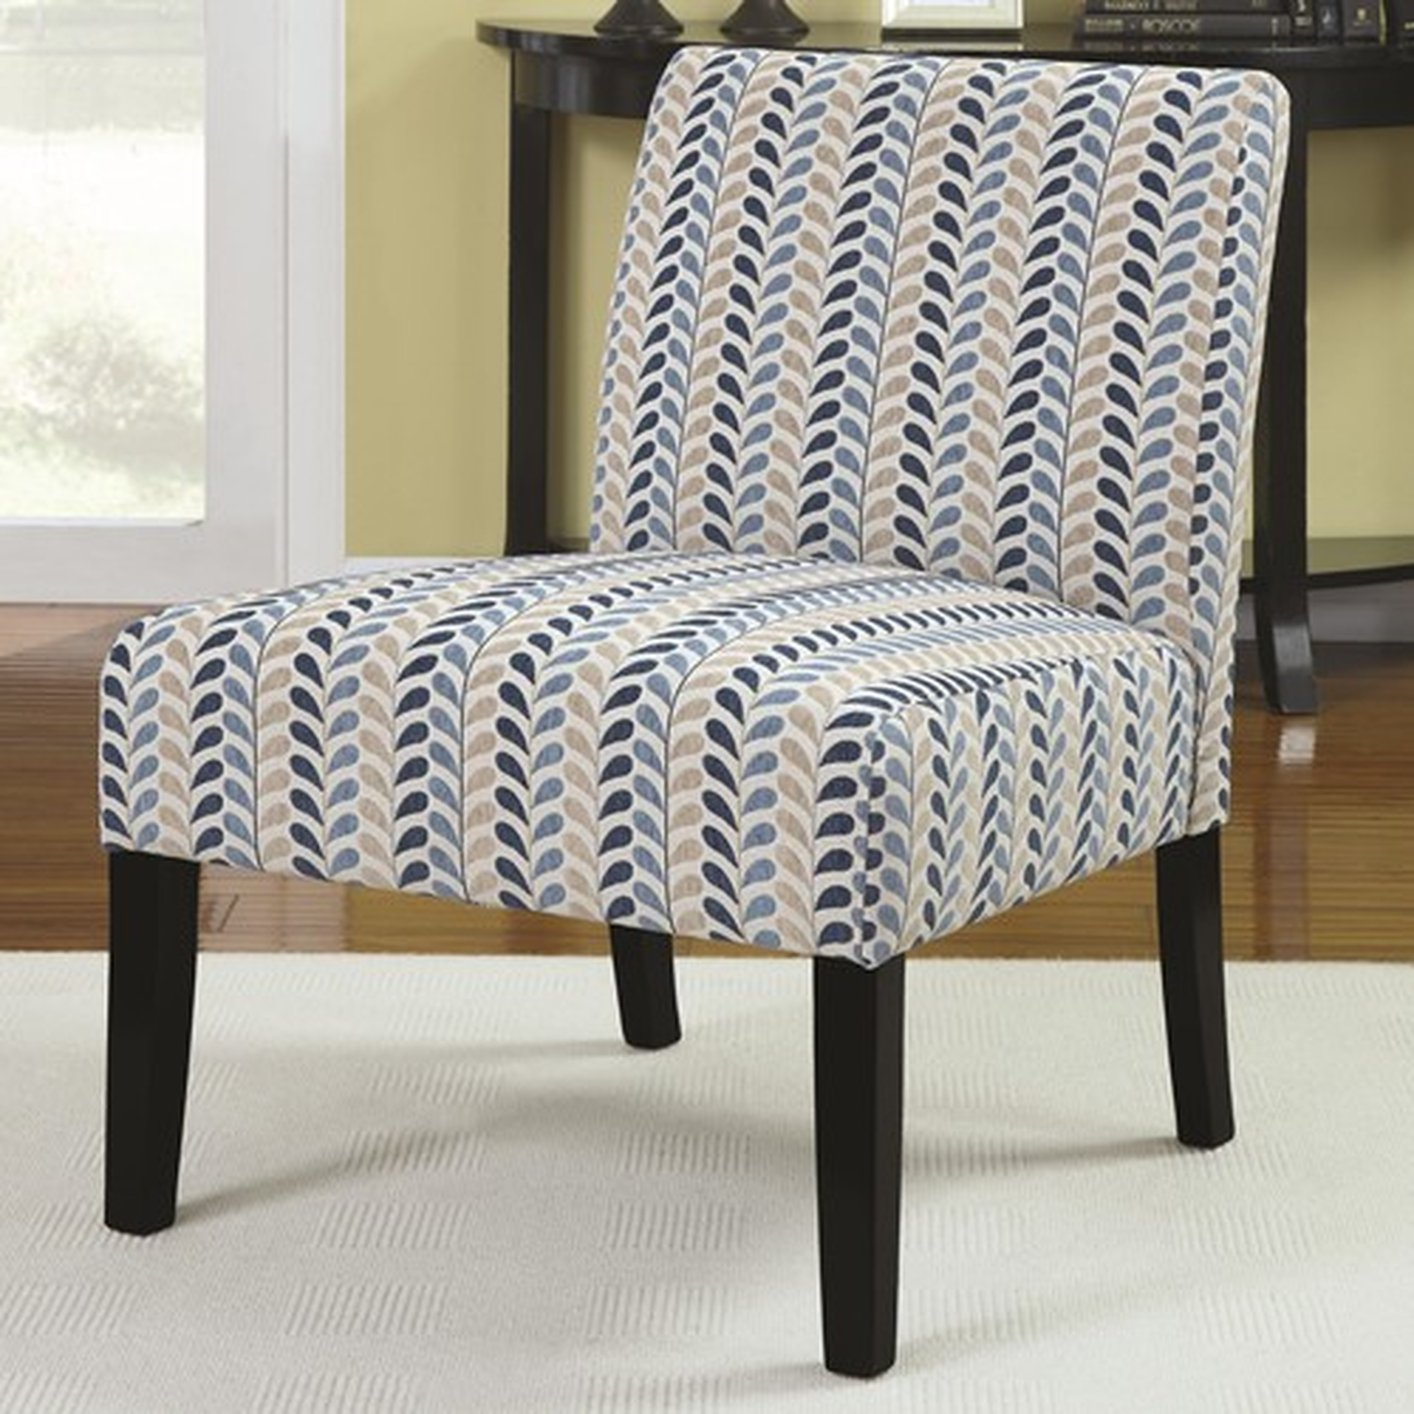 Fabric Accent Chairs gfa cotswold stone fabric accent chair